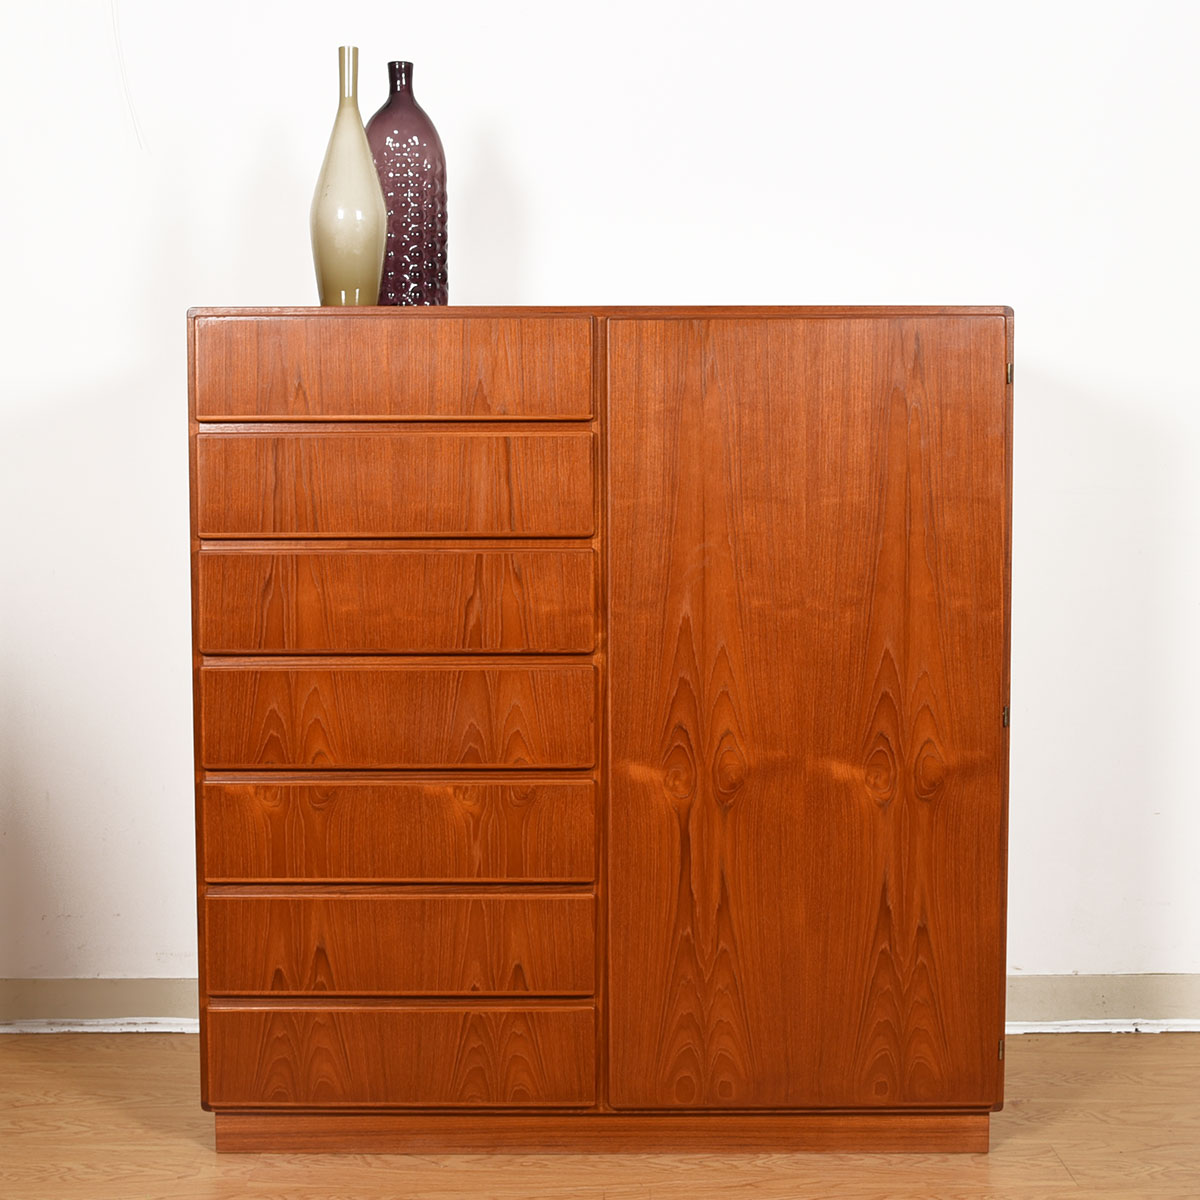 Danish Teak Door Dresser w/ Adjustable Shelves & Drawers